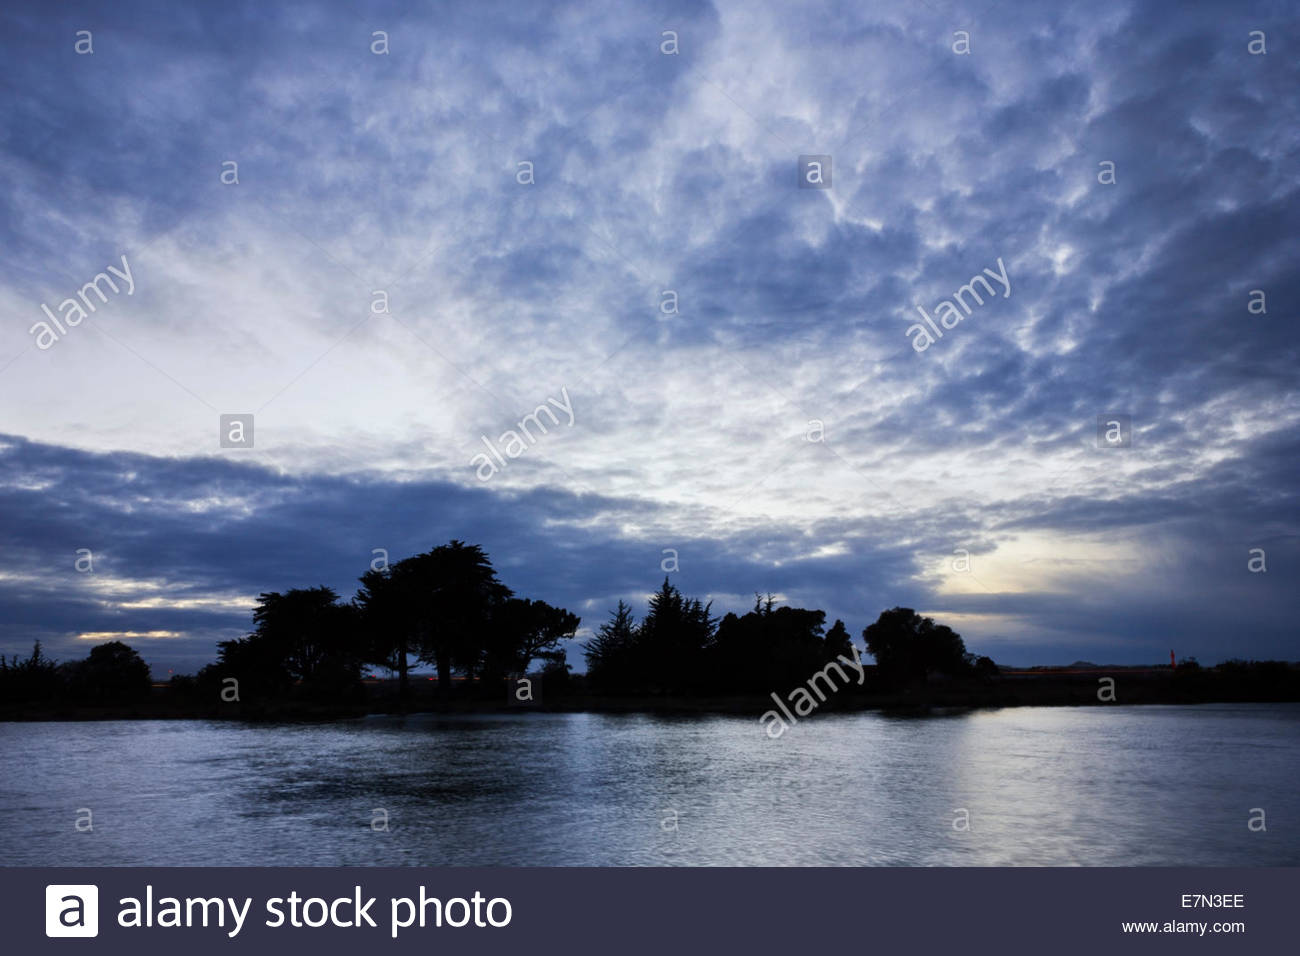 Aquatic Park at Dusk, Berkeley, California - Stock Image